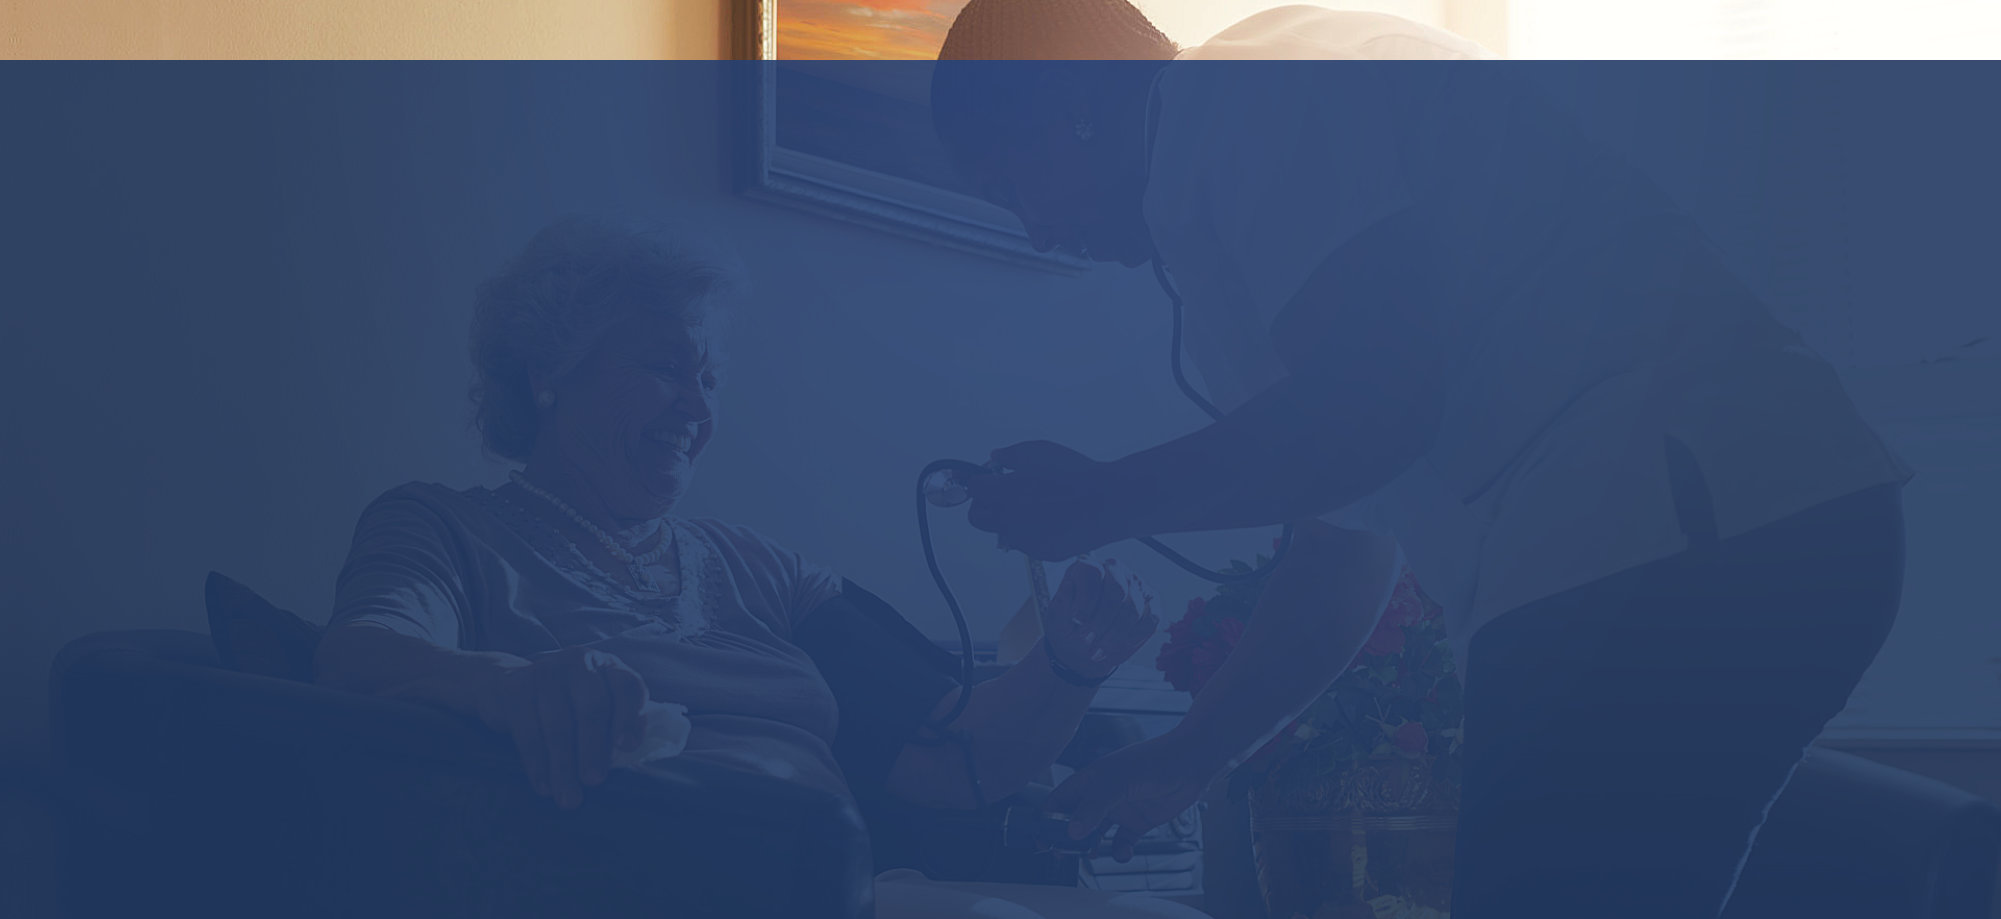 caregiver monitoring the patient's blood pressure